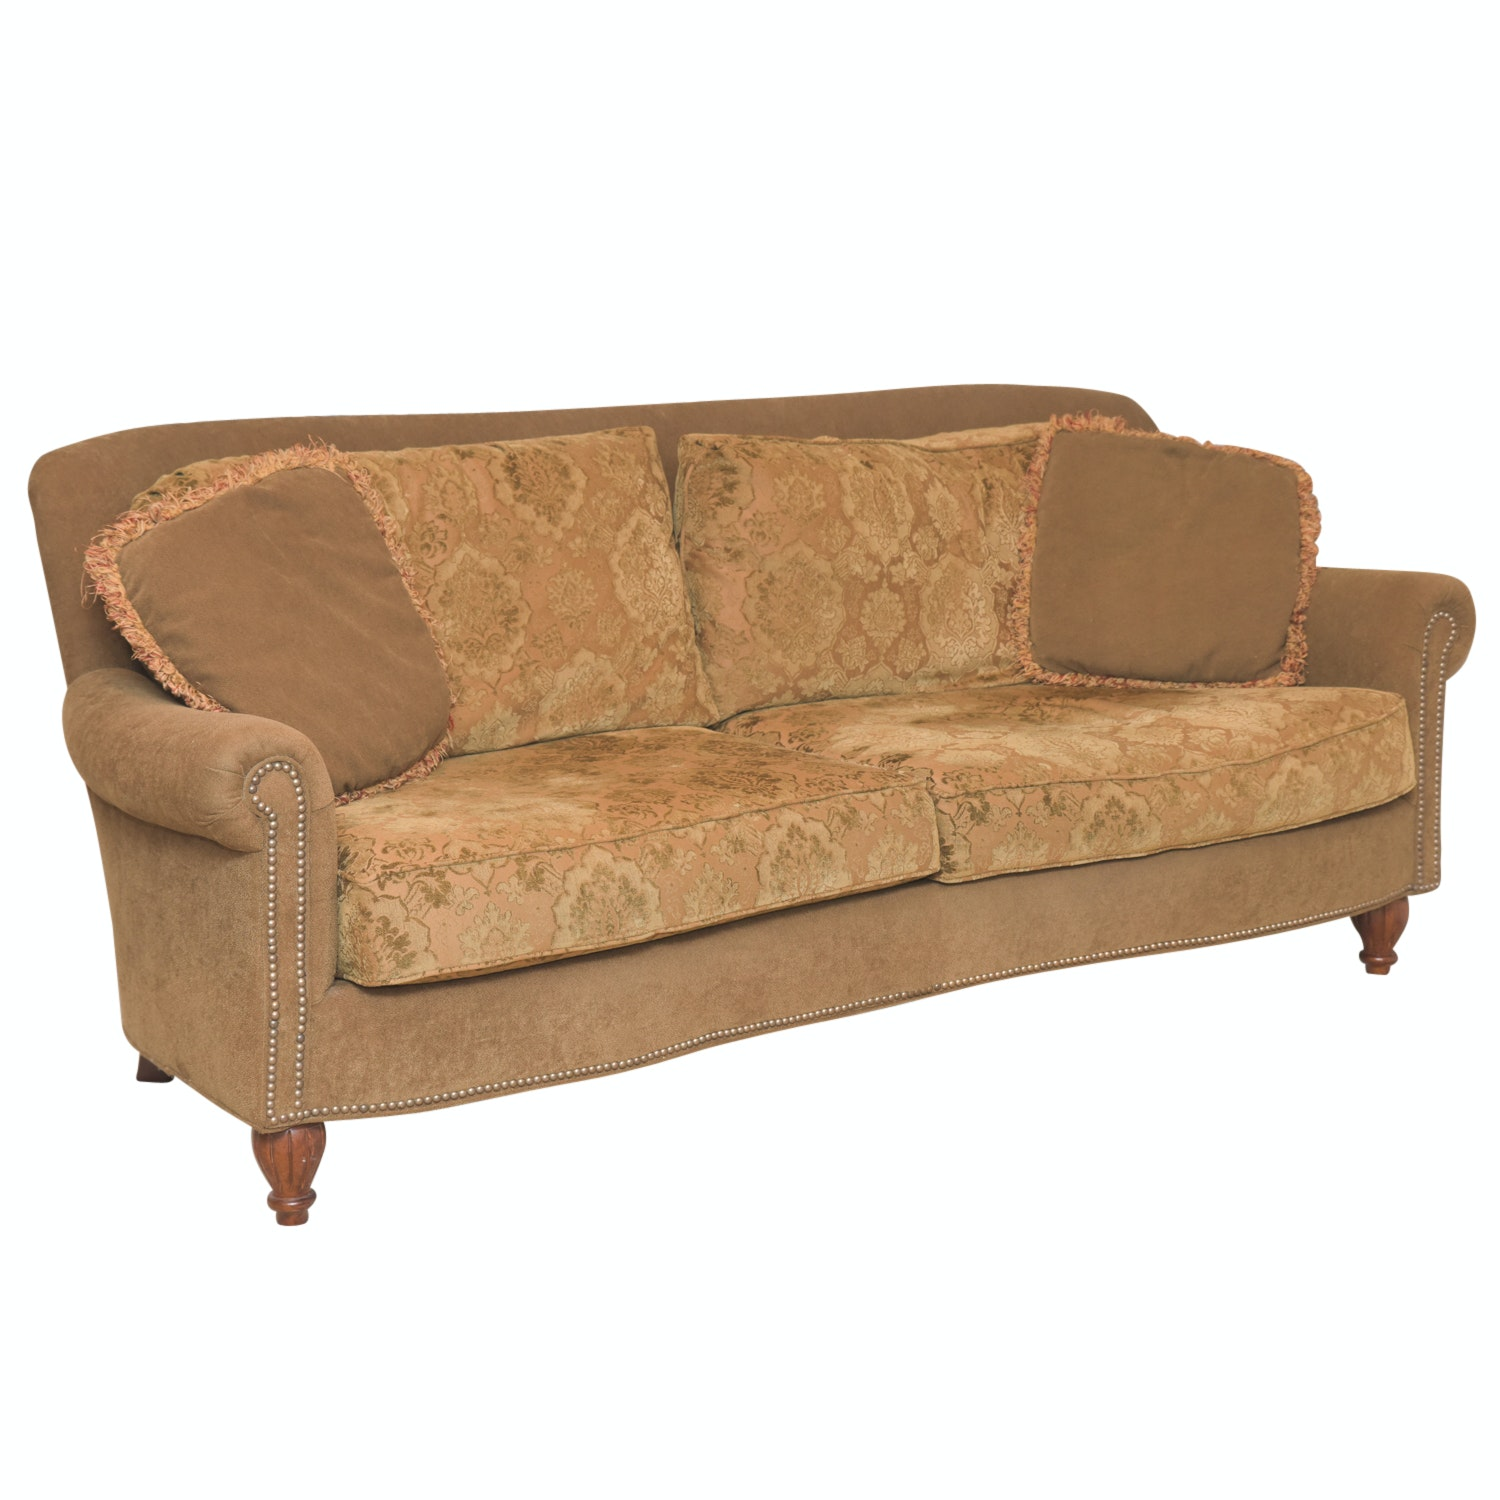 Fairfield Sofa with Floral Patterned Cushions